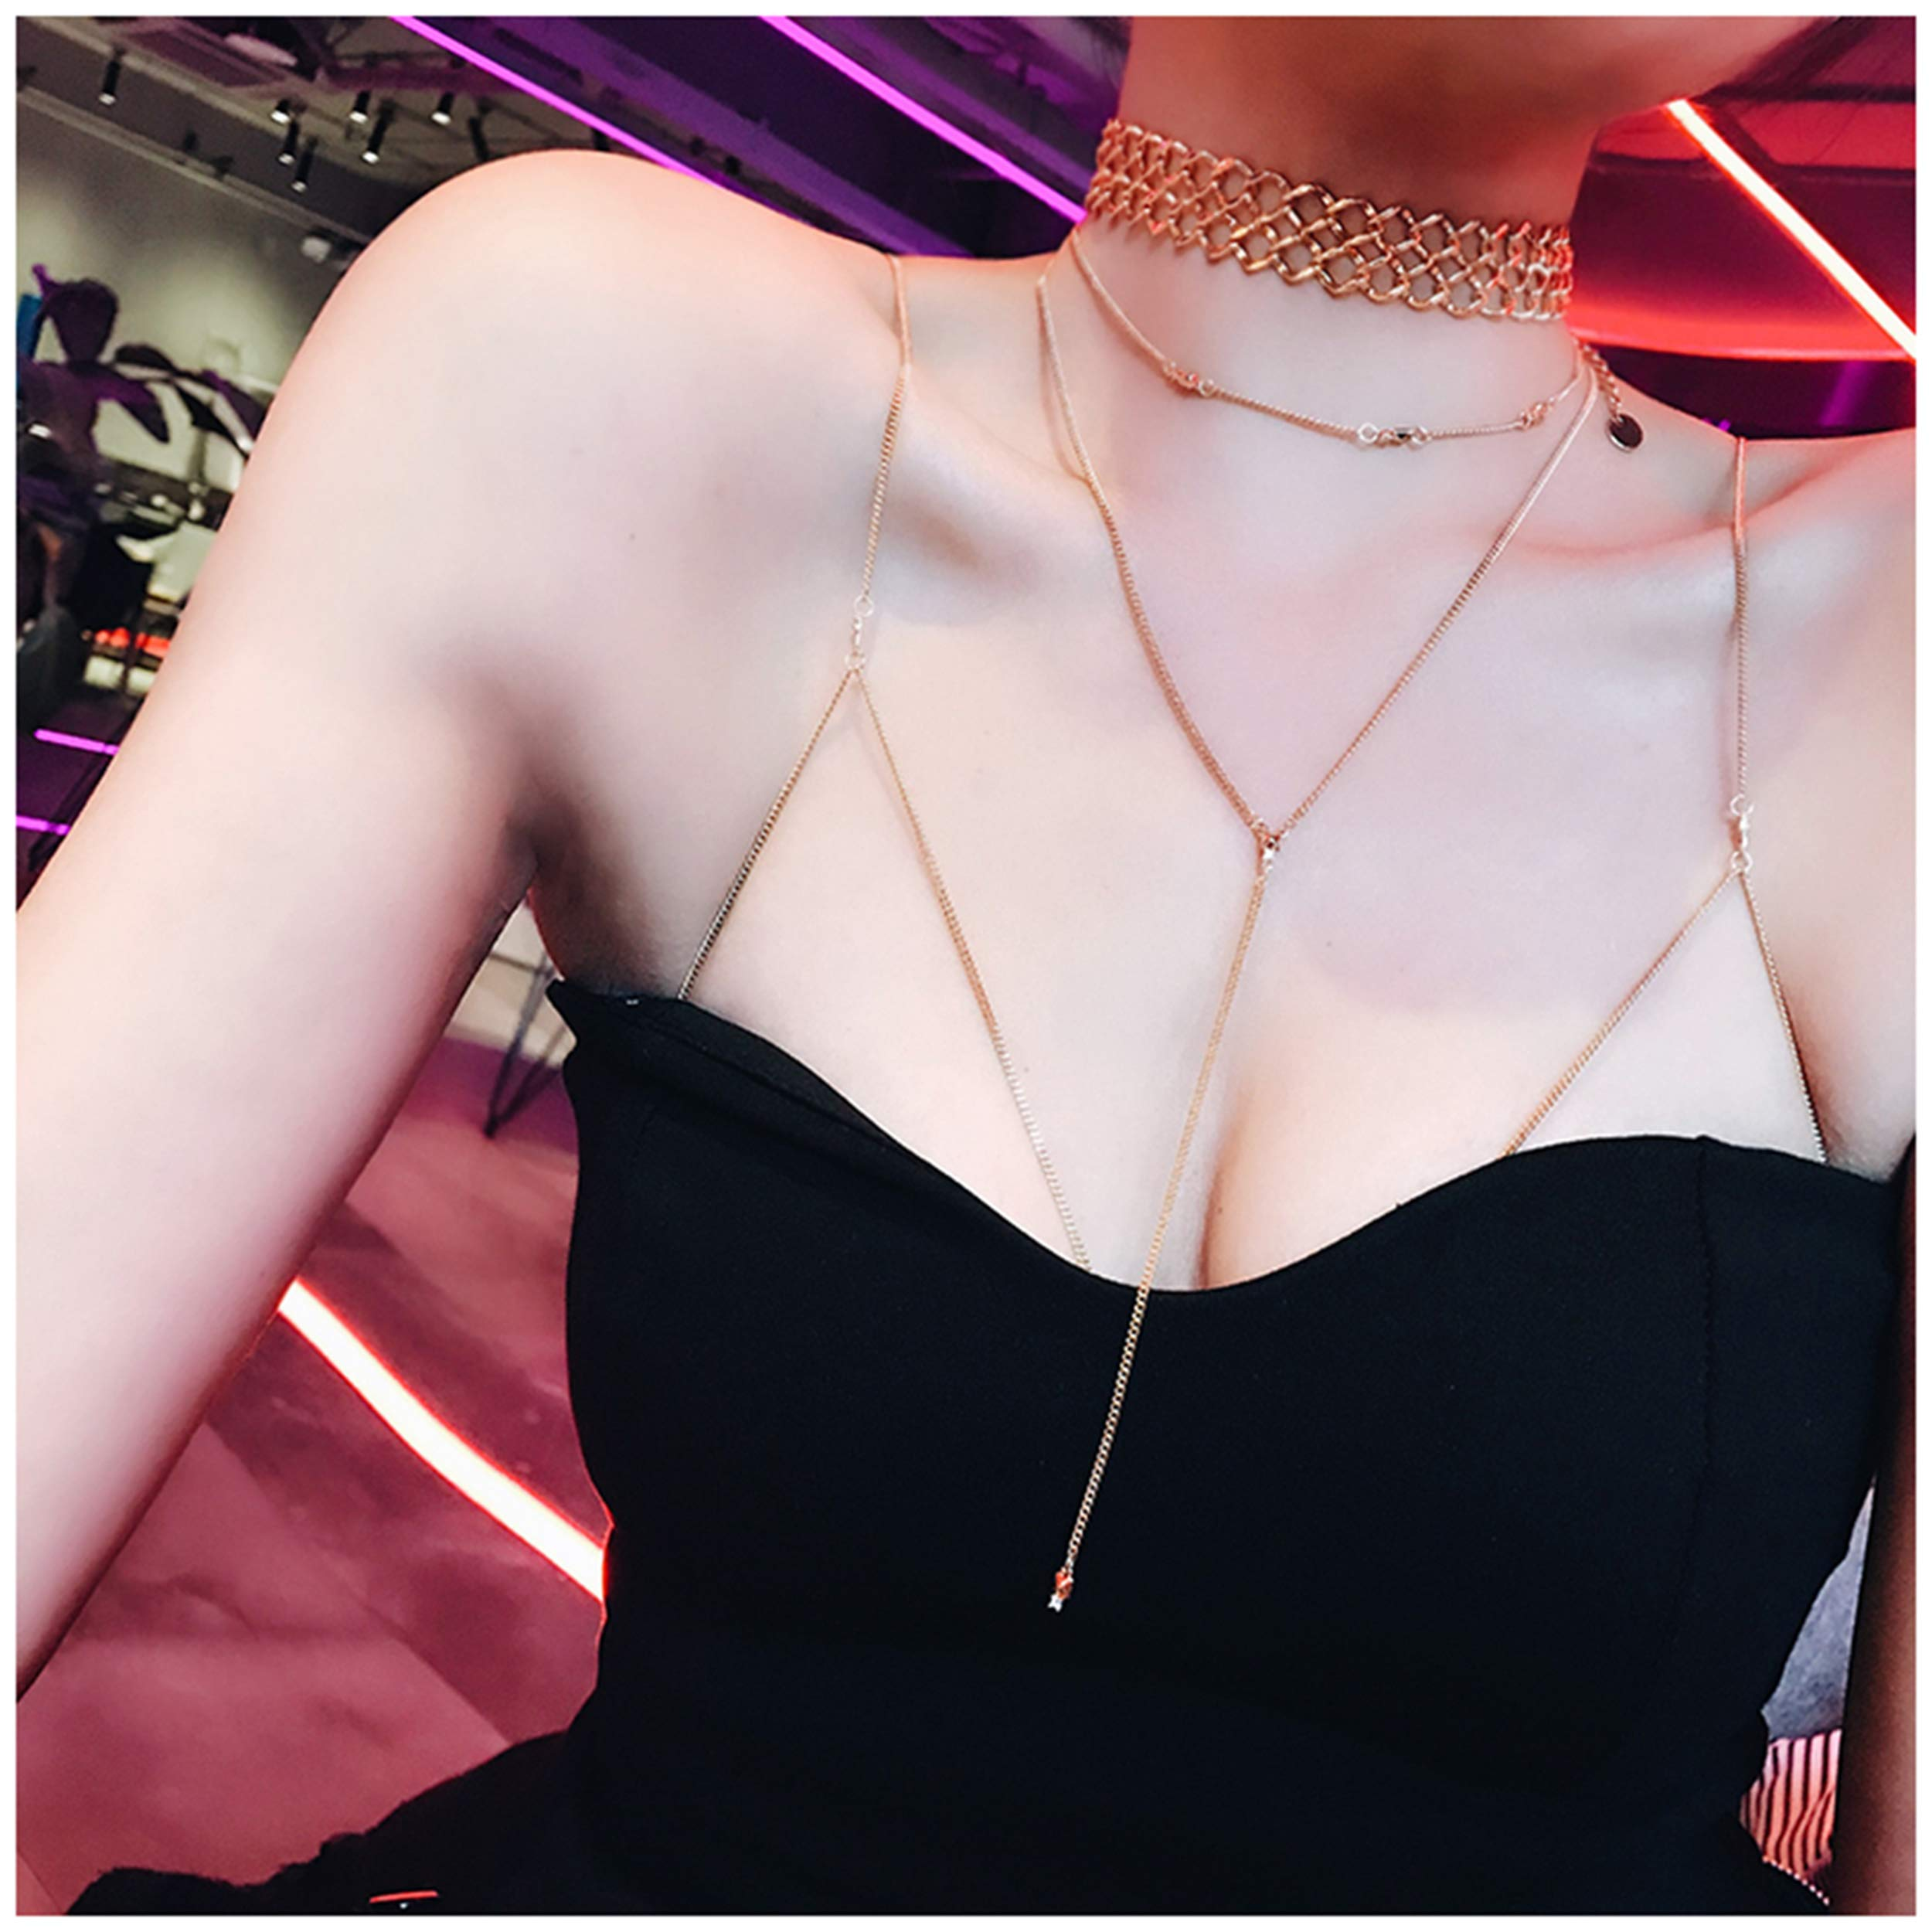 Body Chain Jewelry with Gold Choker Long Pendant Necklace 3Pcs Sexy Body Chain Set Body Necklace for Women by AccPlanet